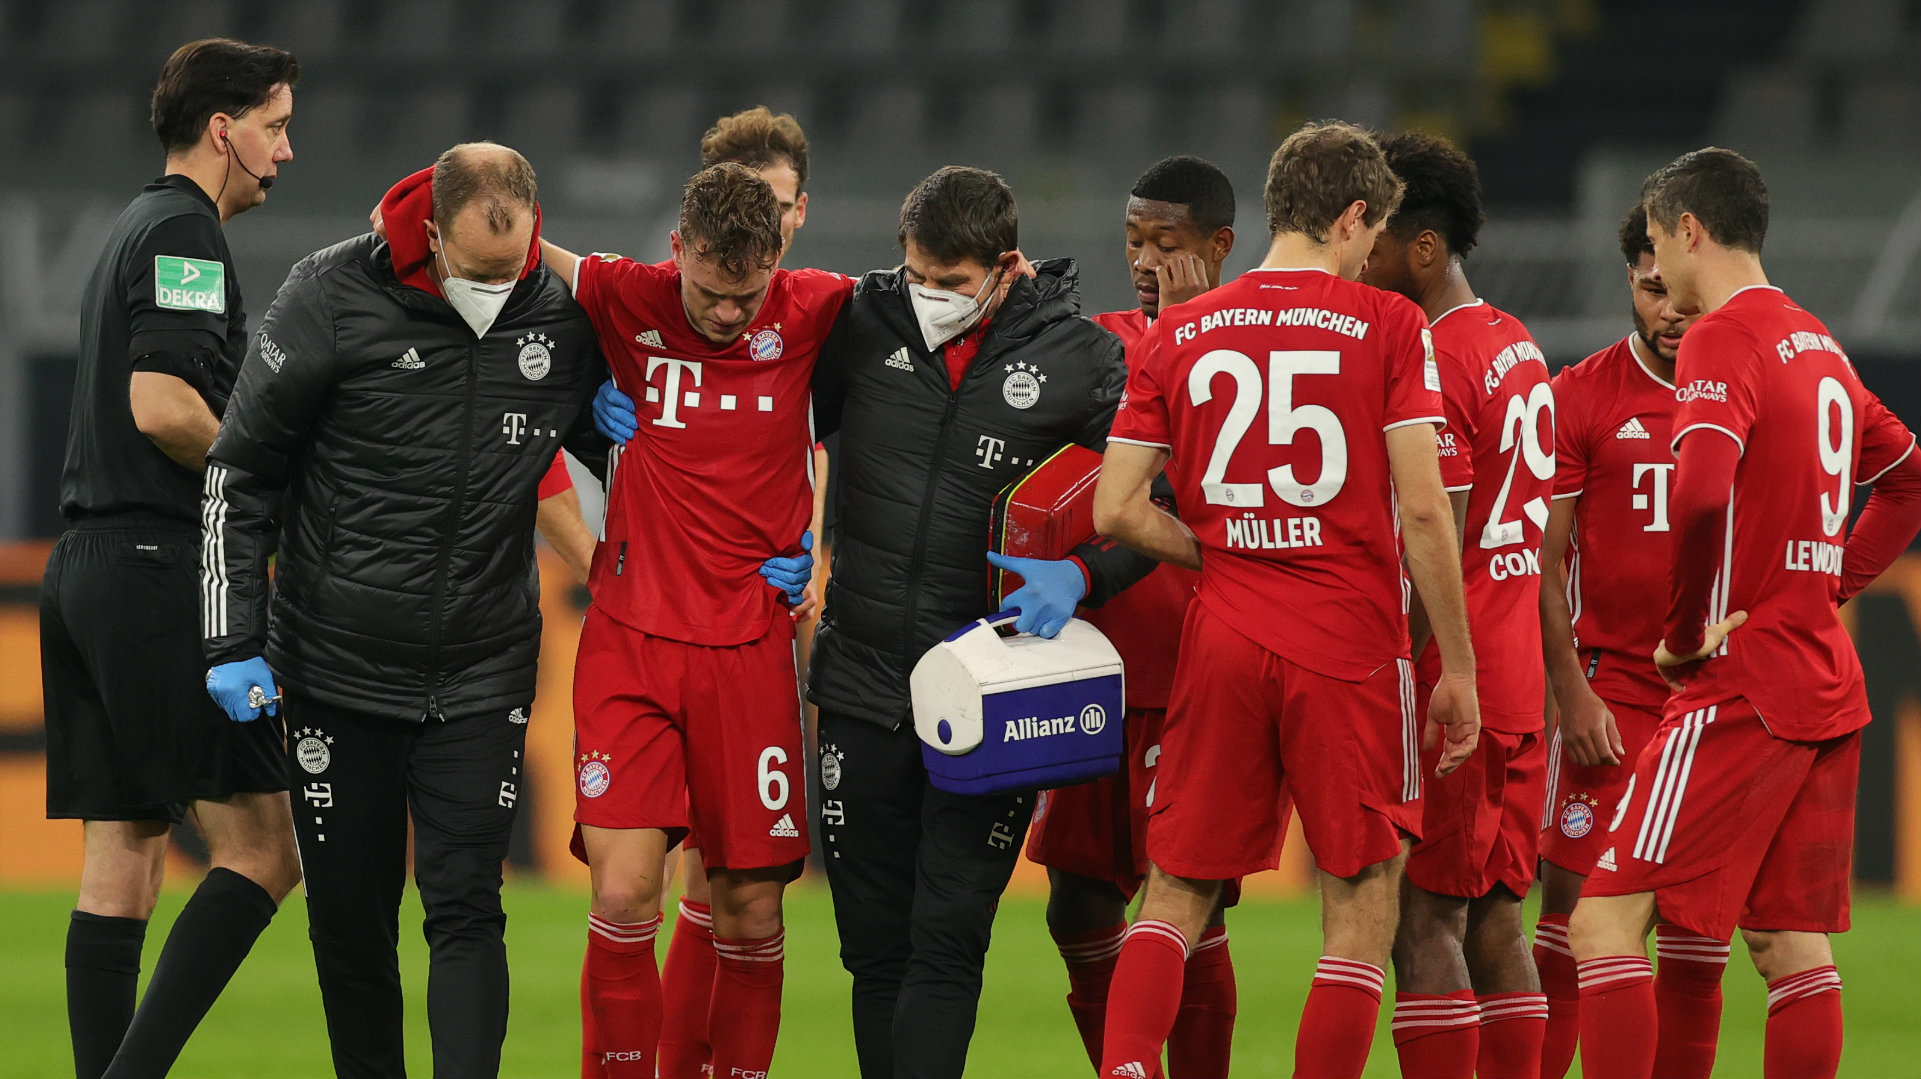 Bayern Star Kimmich Ruled Out Until New Year After Suffering Injury In Der Klassiker Goal com